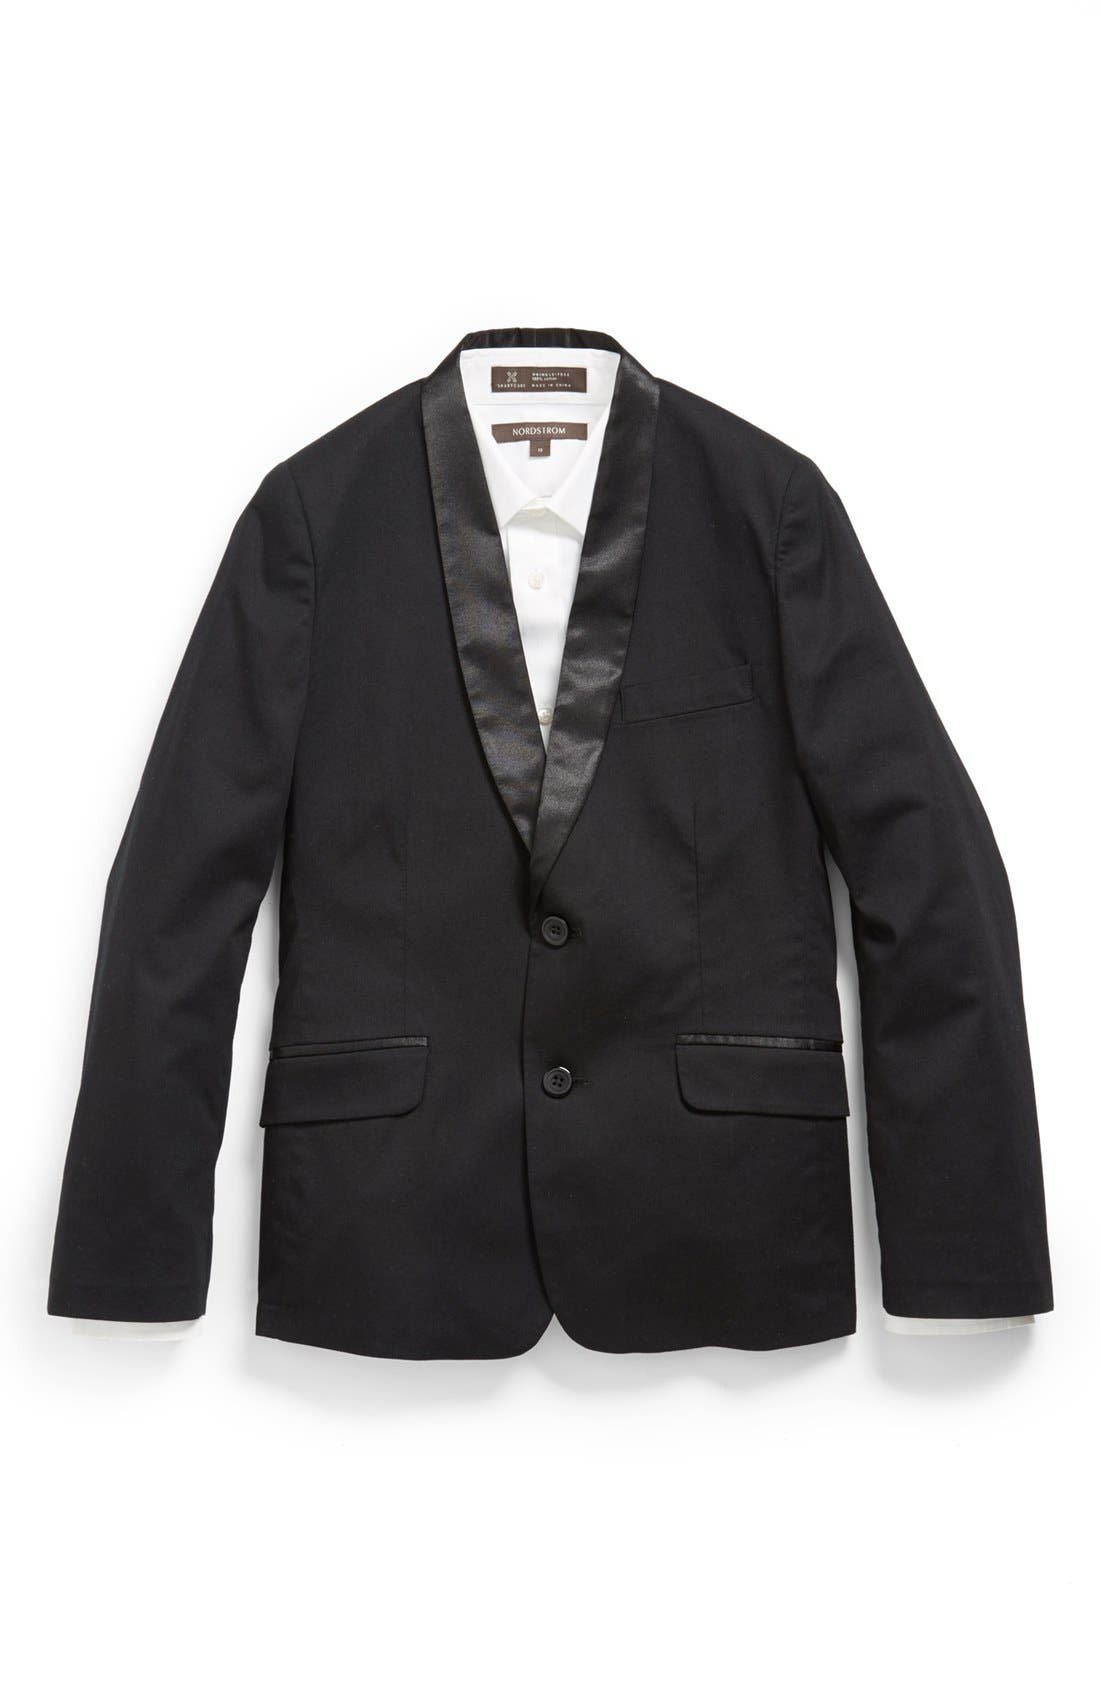 Main Image - C2 by Calibrate 'Holiday' Dinner Jacket (Big Boys)